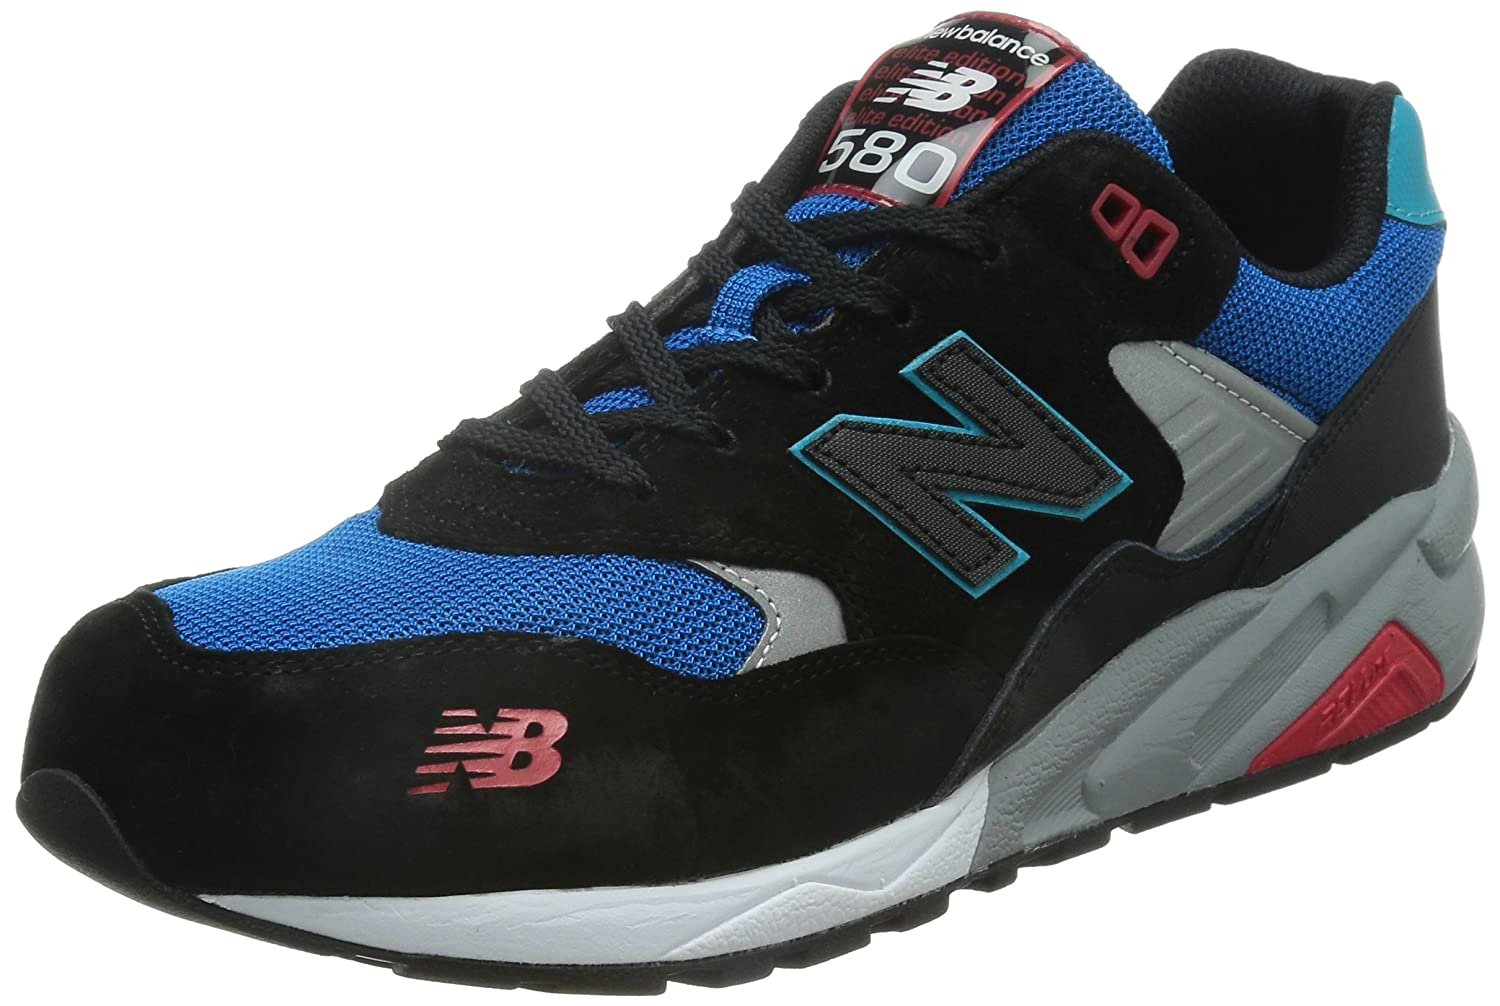 new balance 580 running shoes